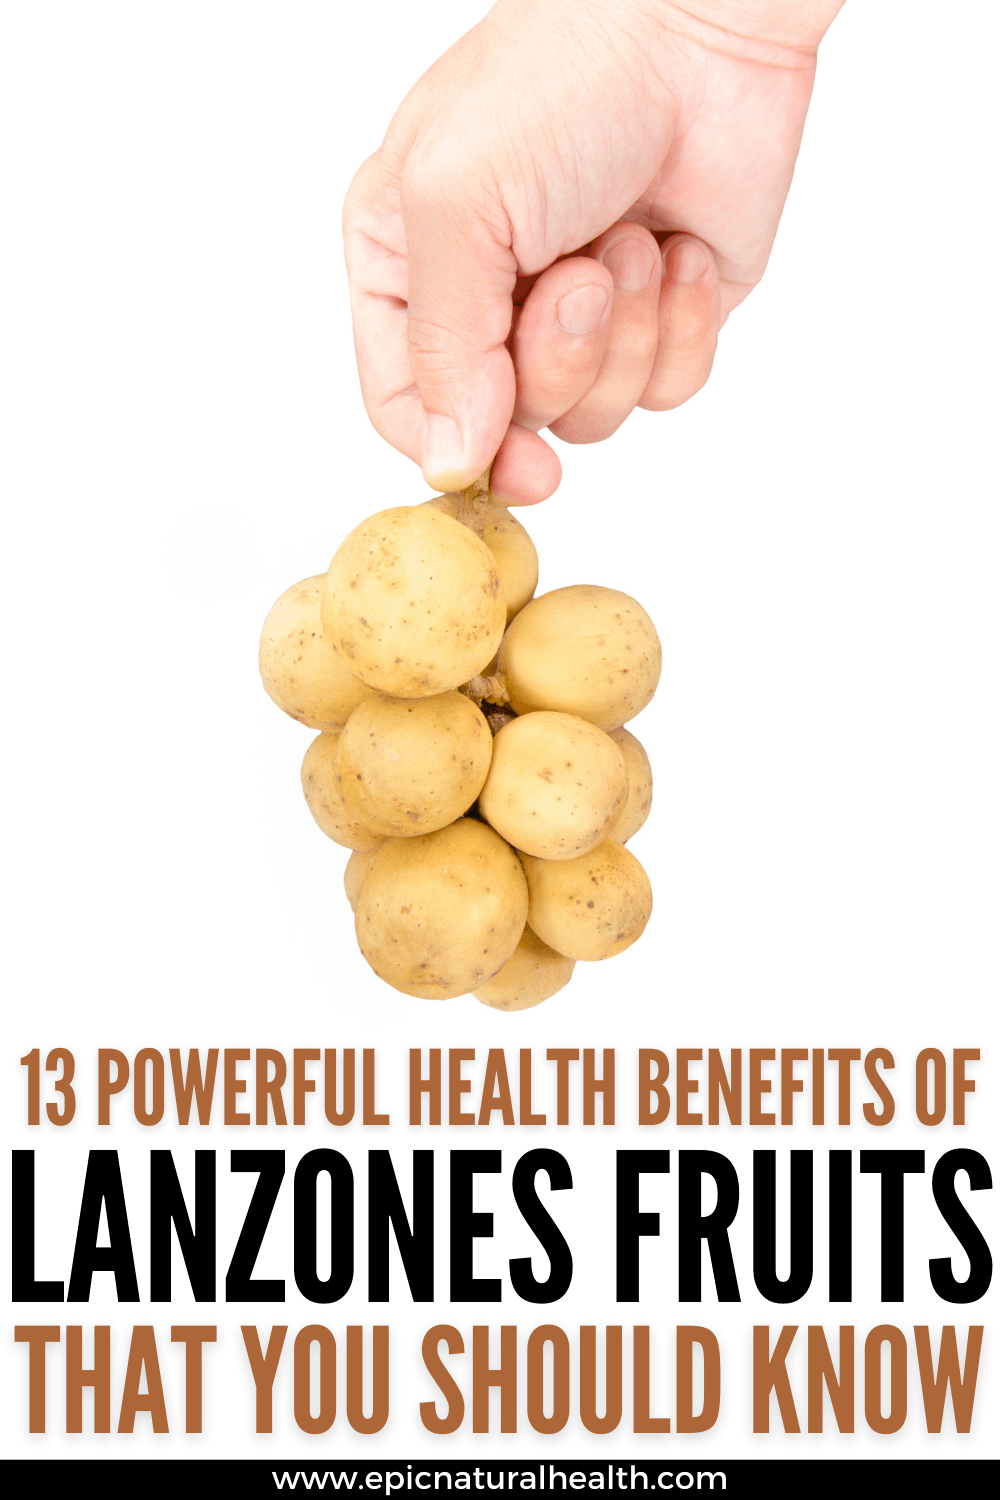 health benefits of lanzones fruits